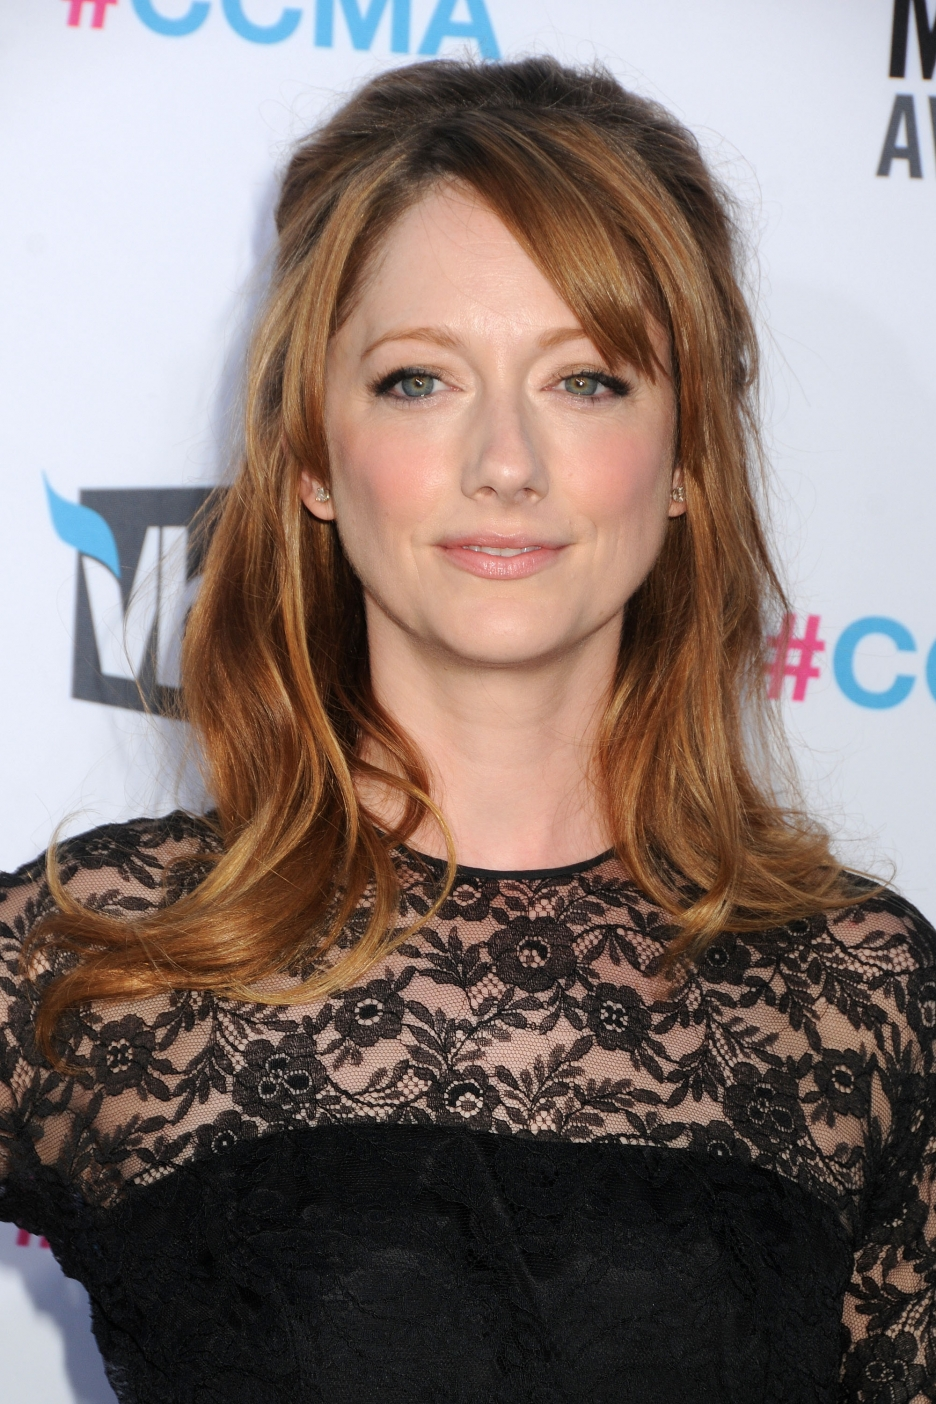 Images Judy Greer nude photos 2019